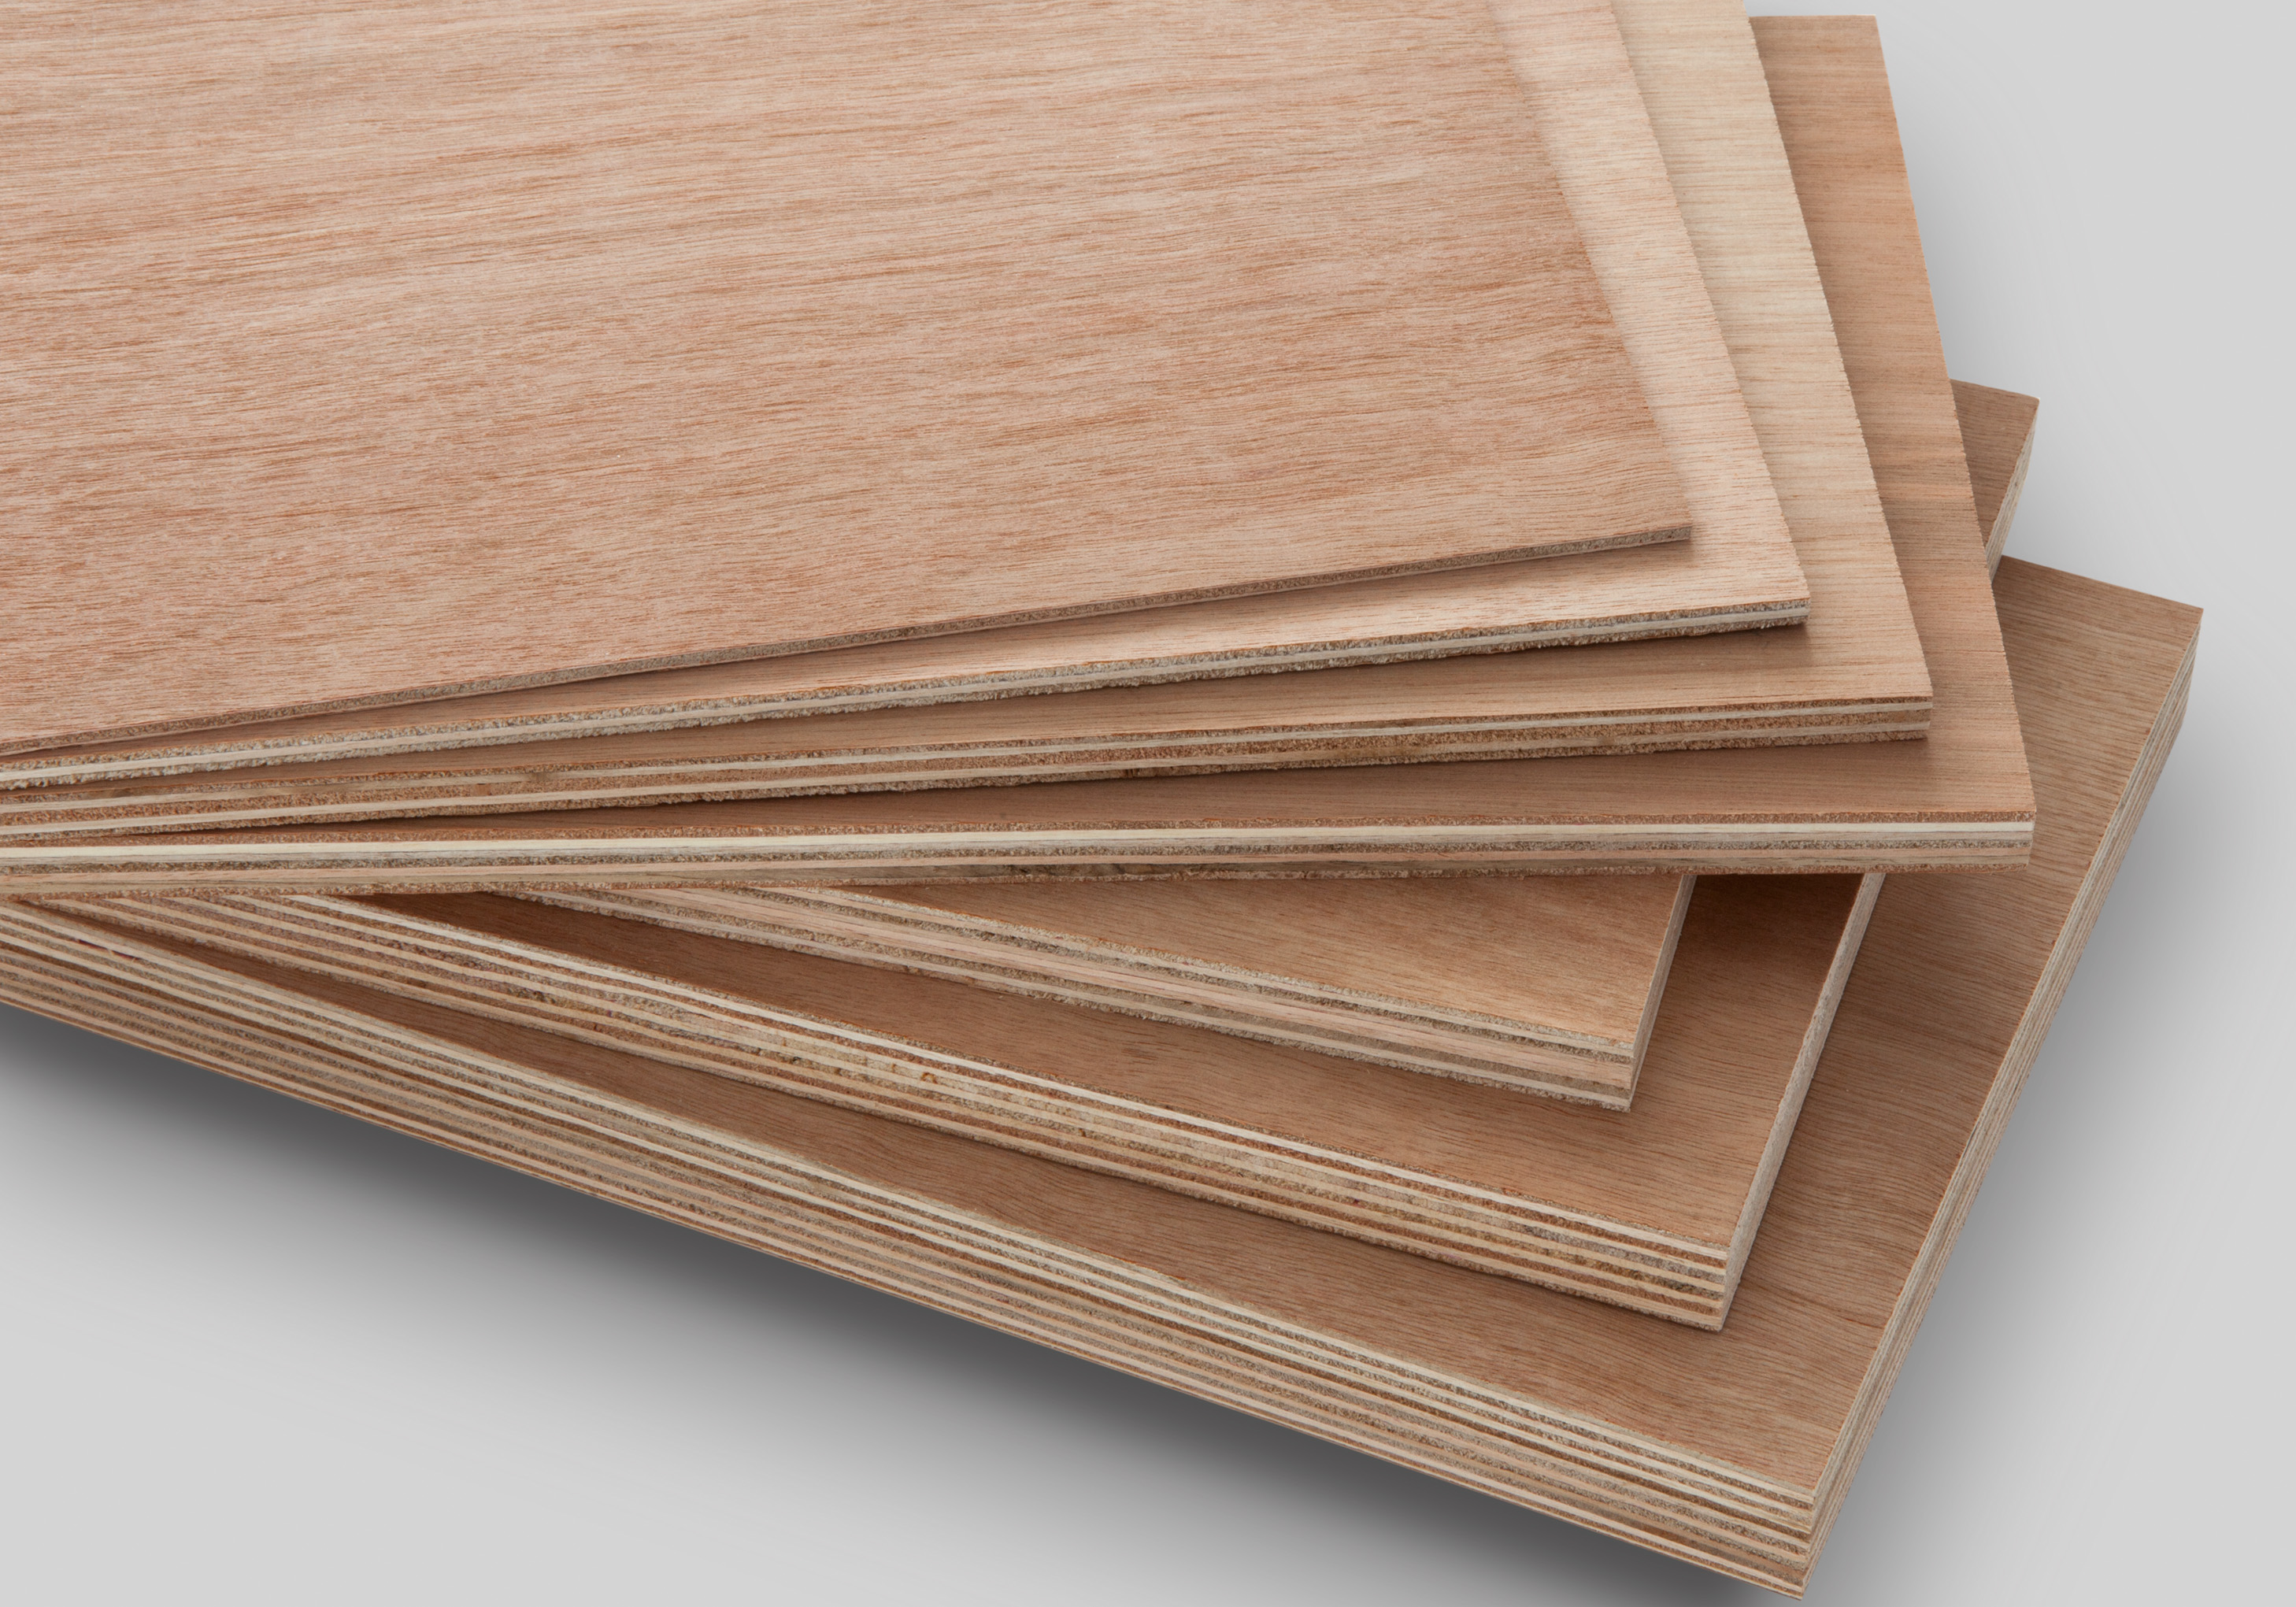 Hardwood Plywood Wbp 2440x1220x5 5mm Wel Bm